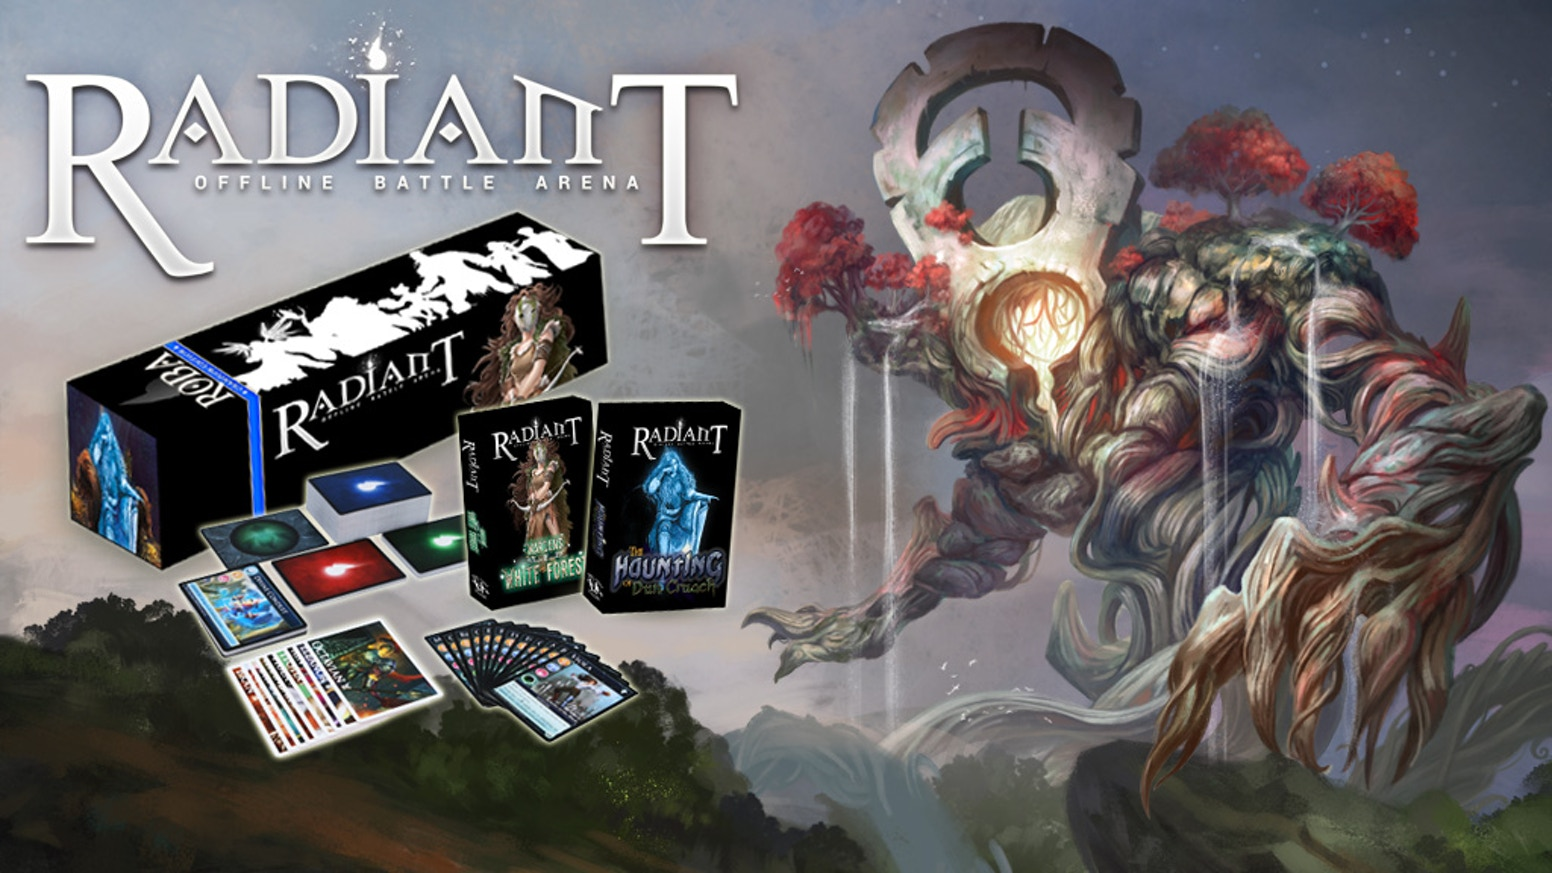 Radiant: Offline Battle Arena, the MOBA-inspired strategy card game, returns with two expansions and a complete collected edition.